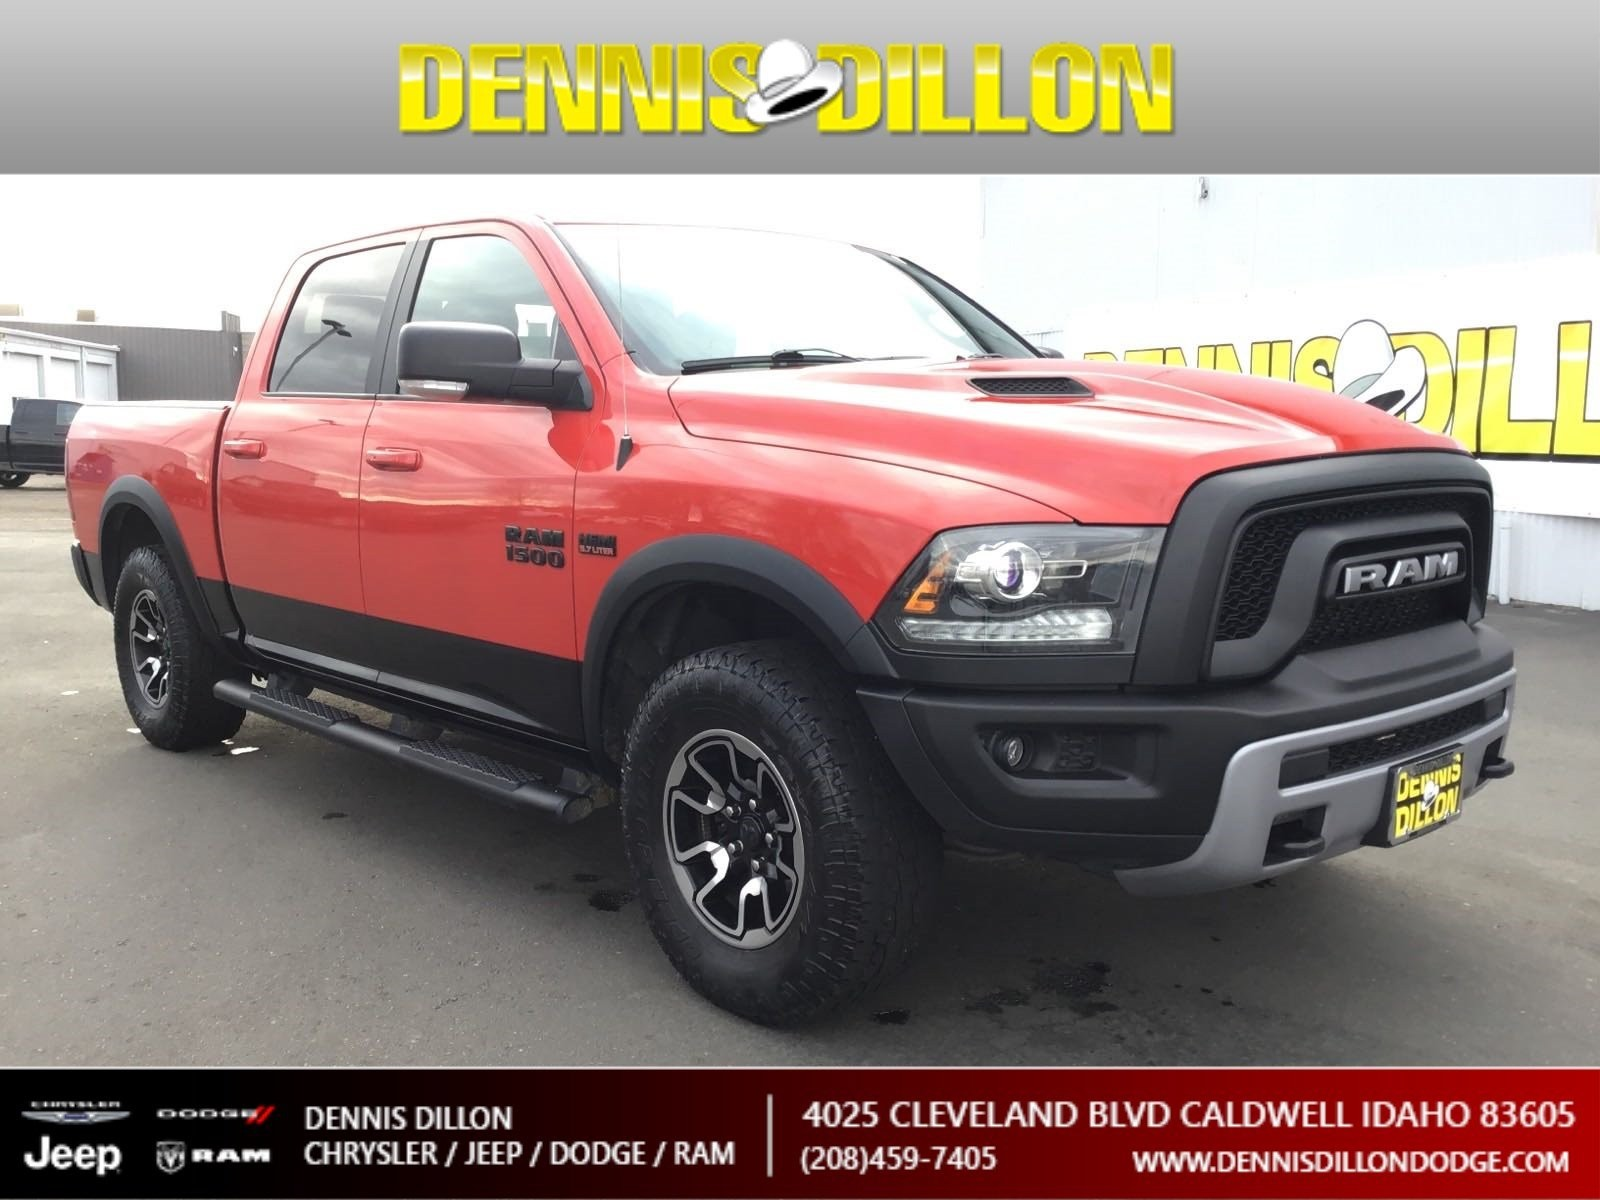 Tailight Wiring for 2016 Ram Rebel for Reverse Certified Pre Owned 2016 Ram 1500 Rebel Crew Cab Pickup In Of Tailight Wiring for 2016 Ram Rebel for Reverse